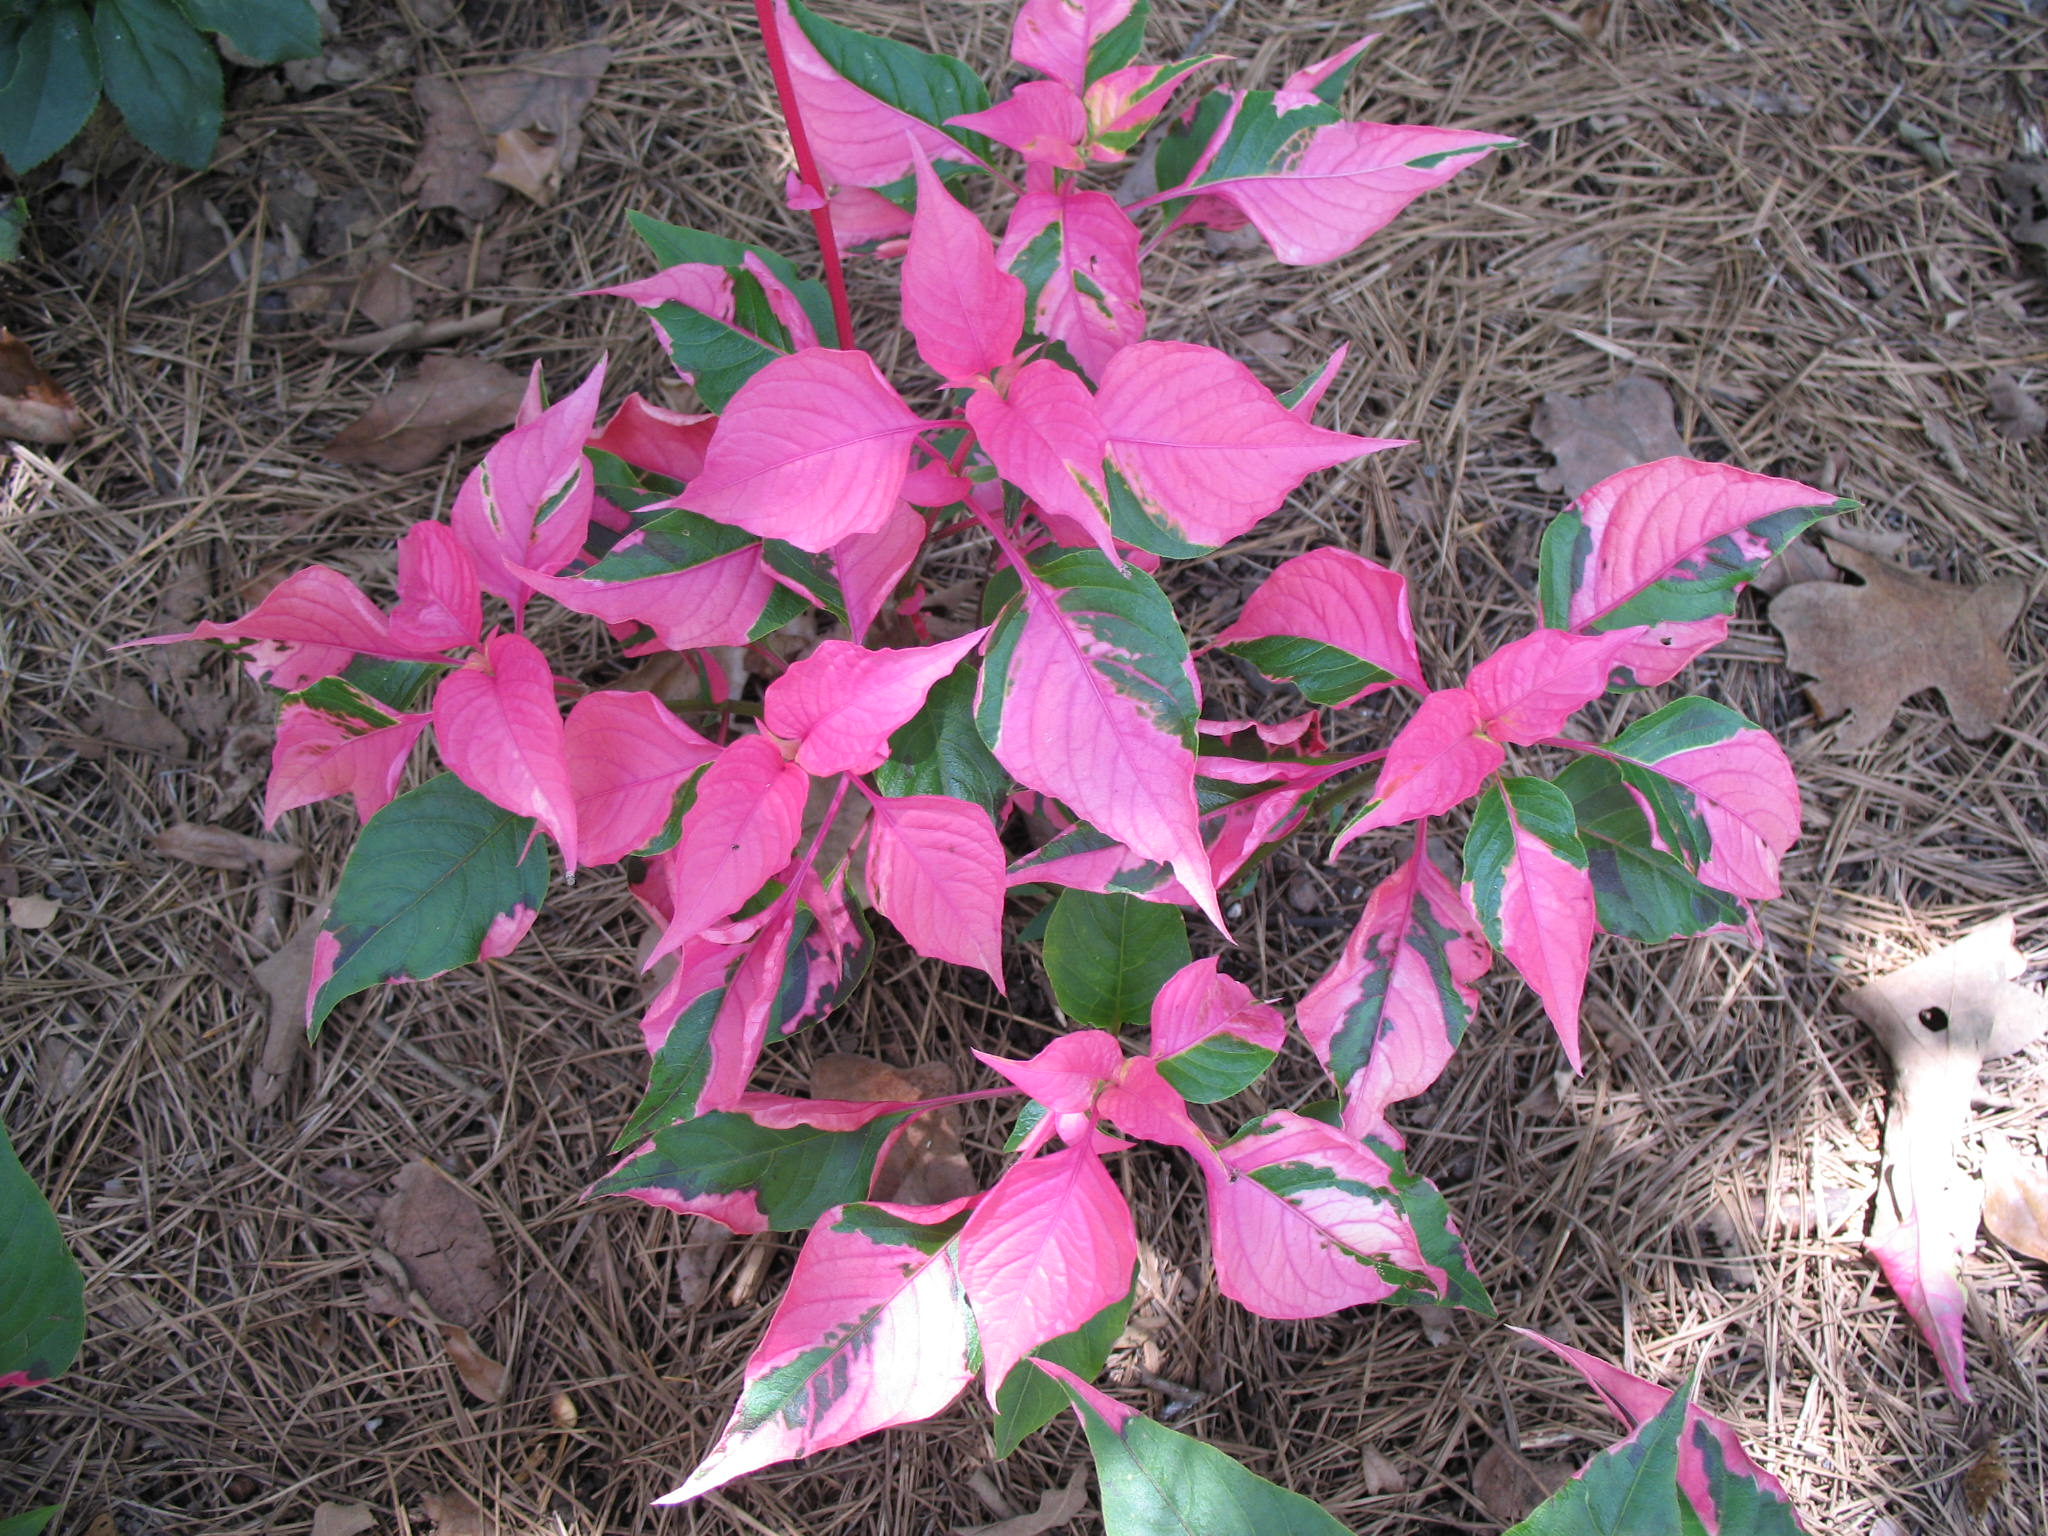 Alternanthera ficoidea 'Party Time'   / Alternanthera ficoidea 'Party Time'